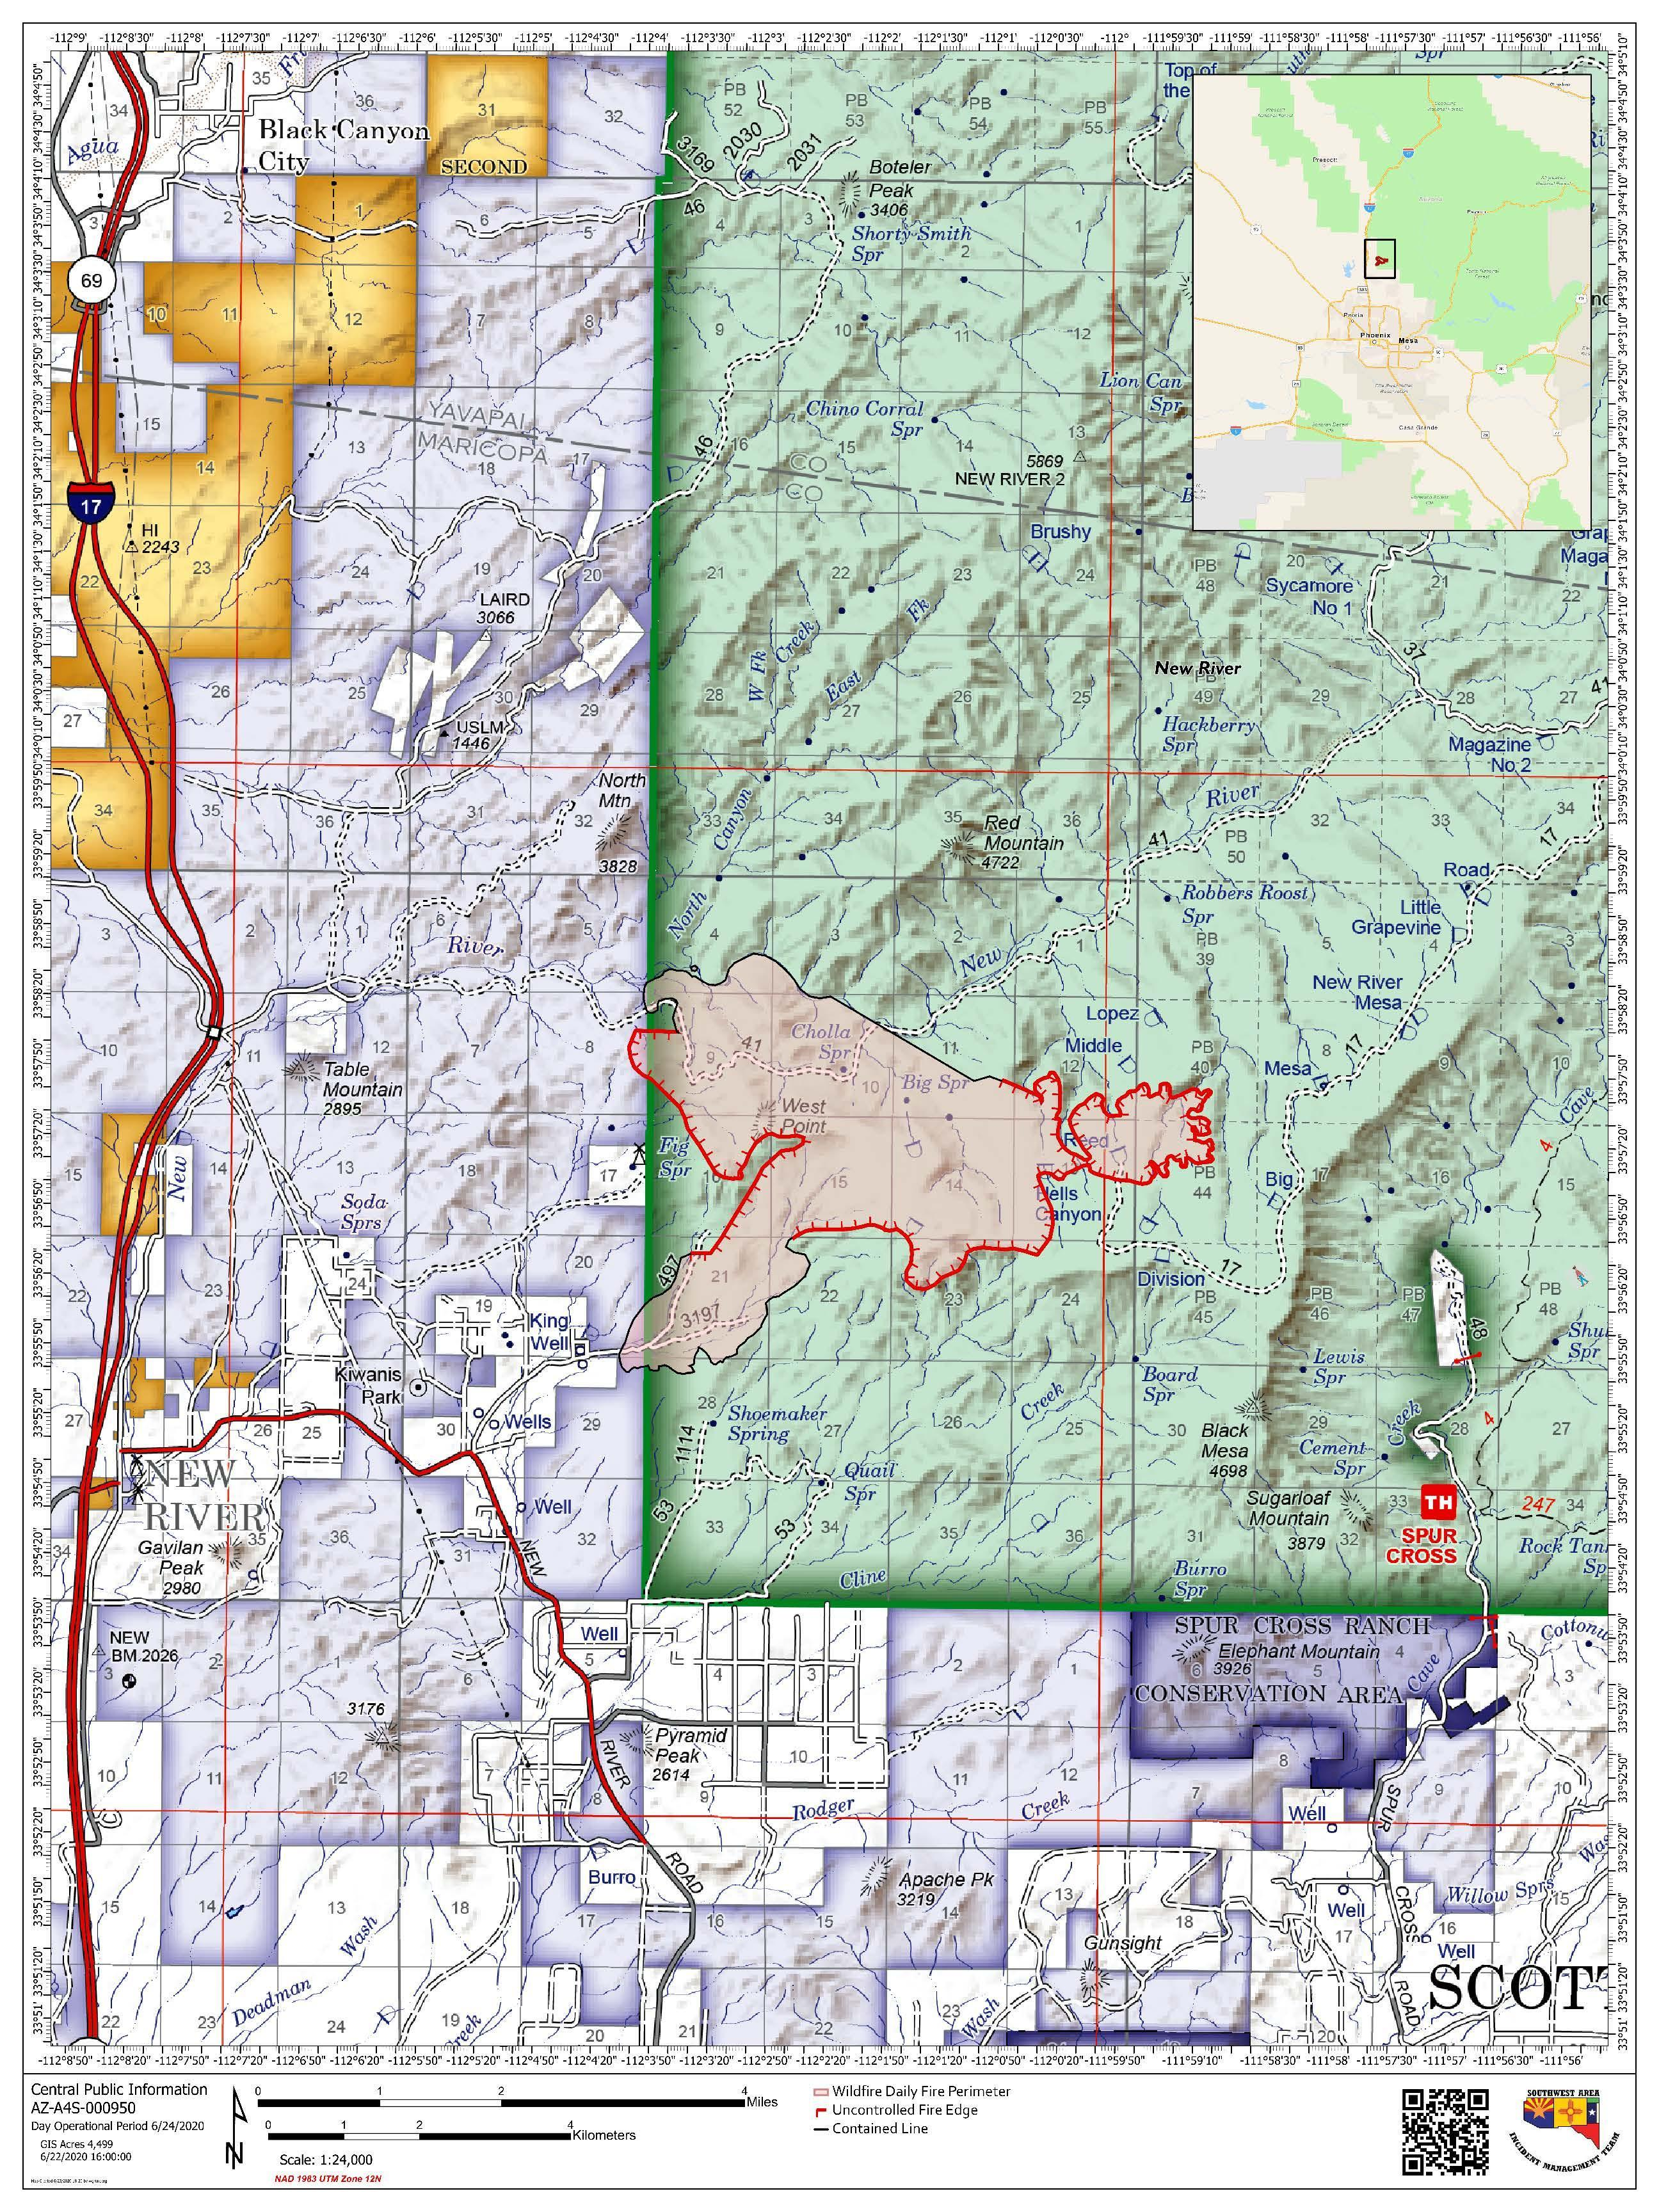 Public Map of the Central Fire for June 23, 2020. A pdf of this map is downloadable